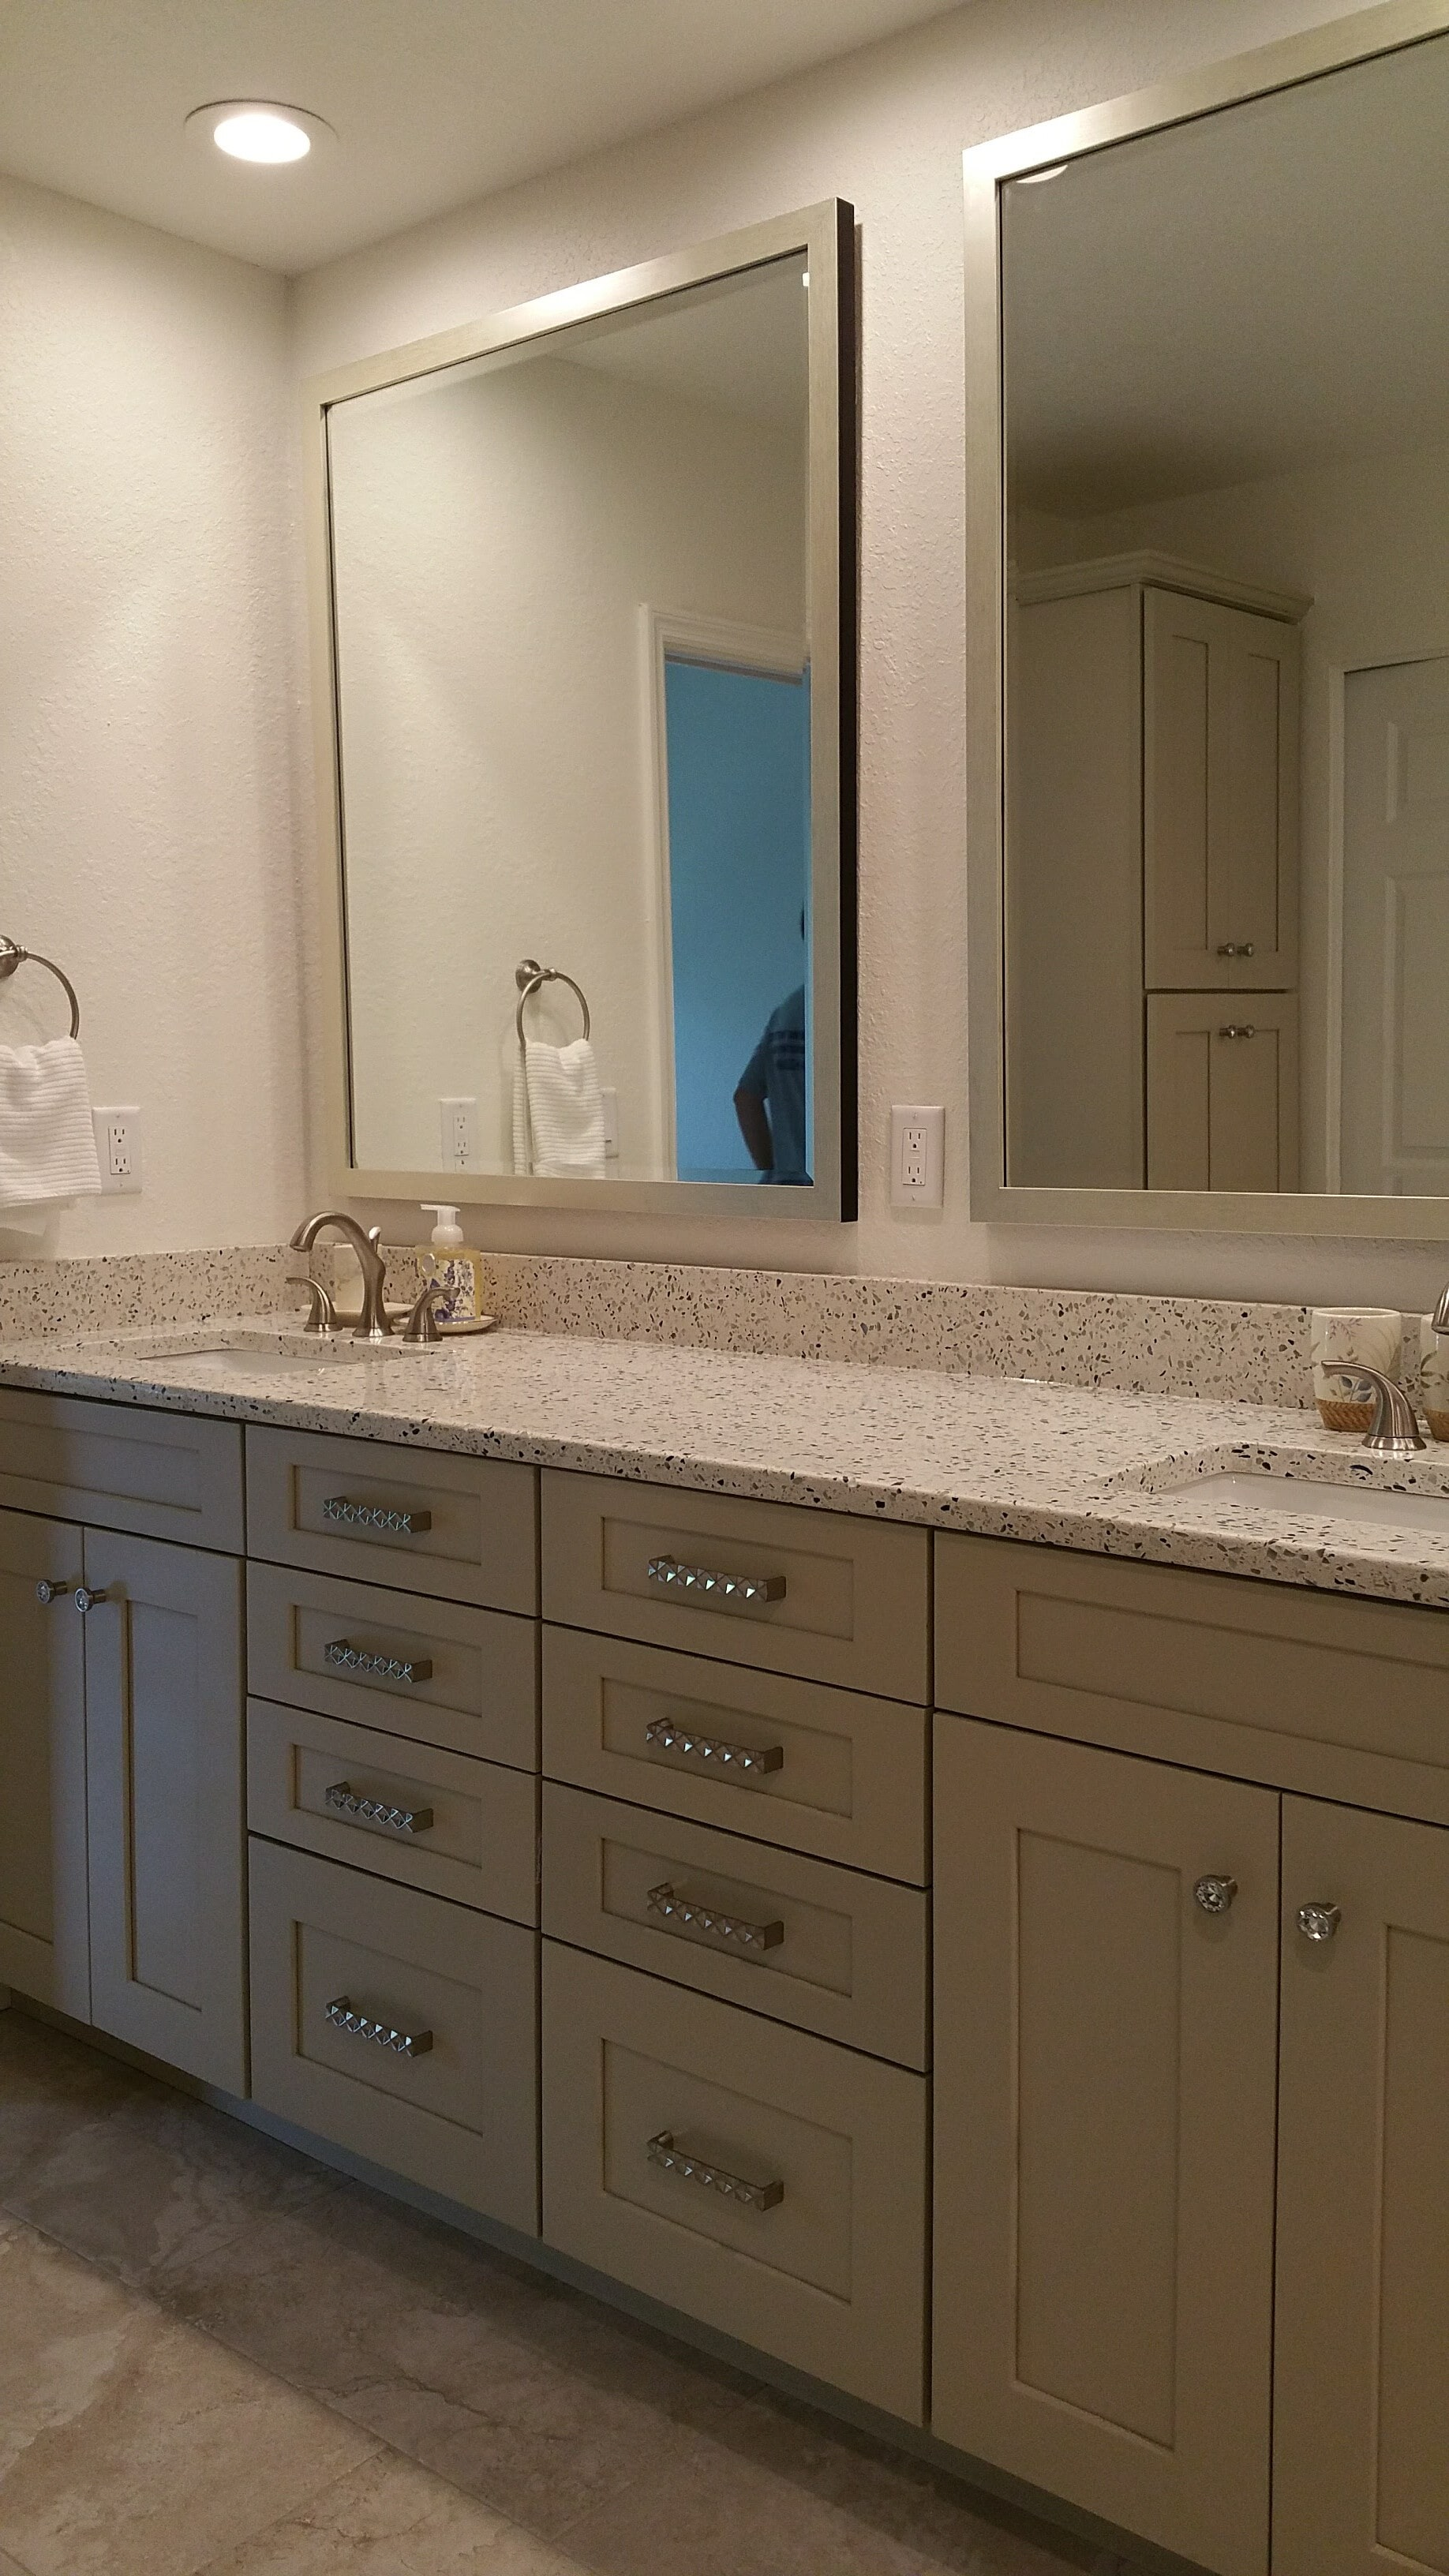 Full bathroom remodel with double vanity sink from Relo Interior Design in Tampa FL